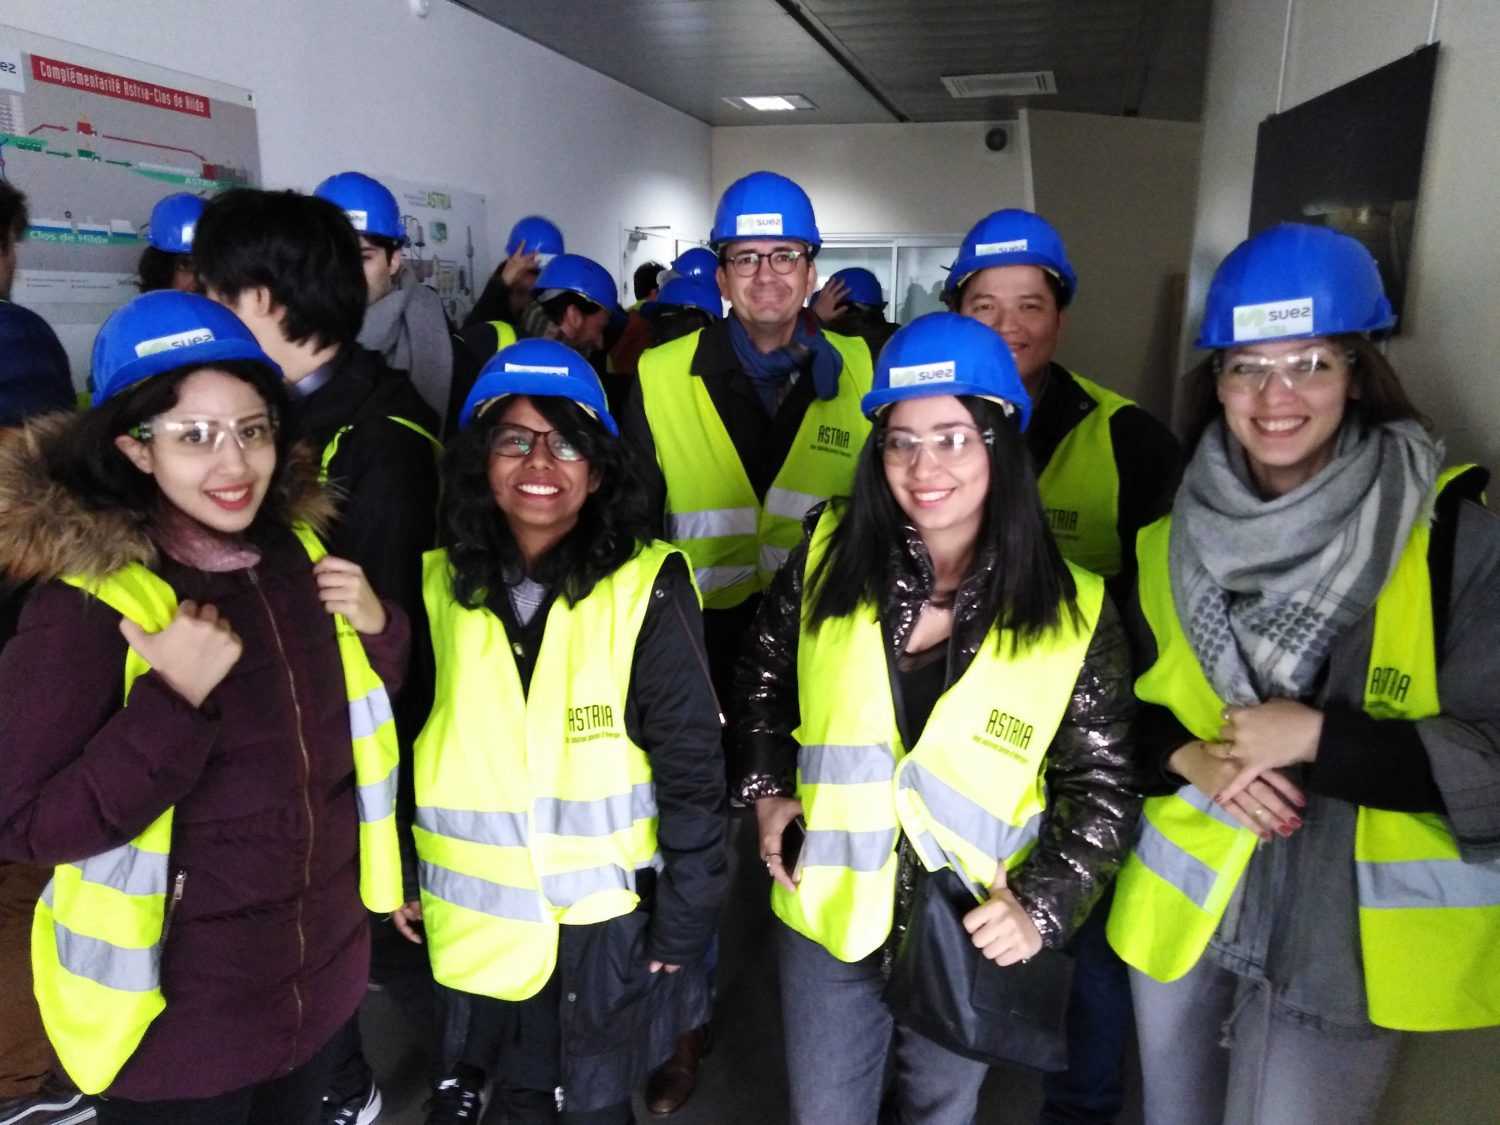 The doctoral fellows of the COFUND european project INSPIRE are wearing protective gears for the visit of the ASTRIA Plant.